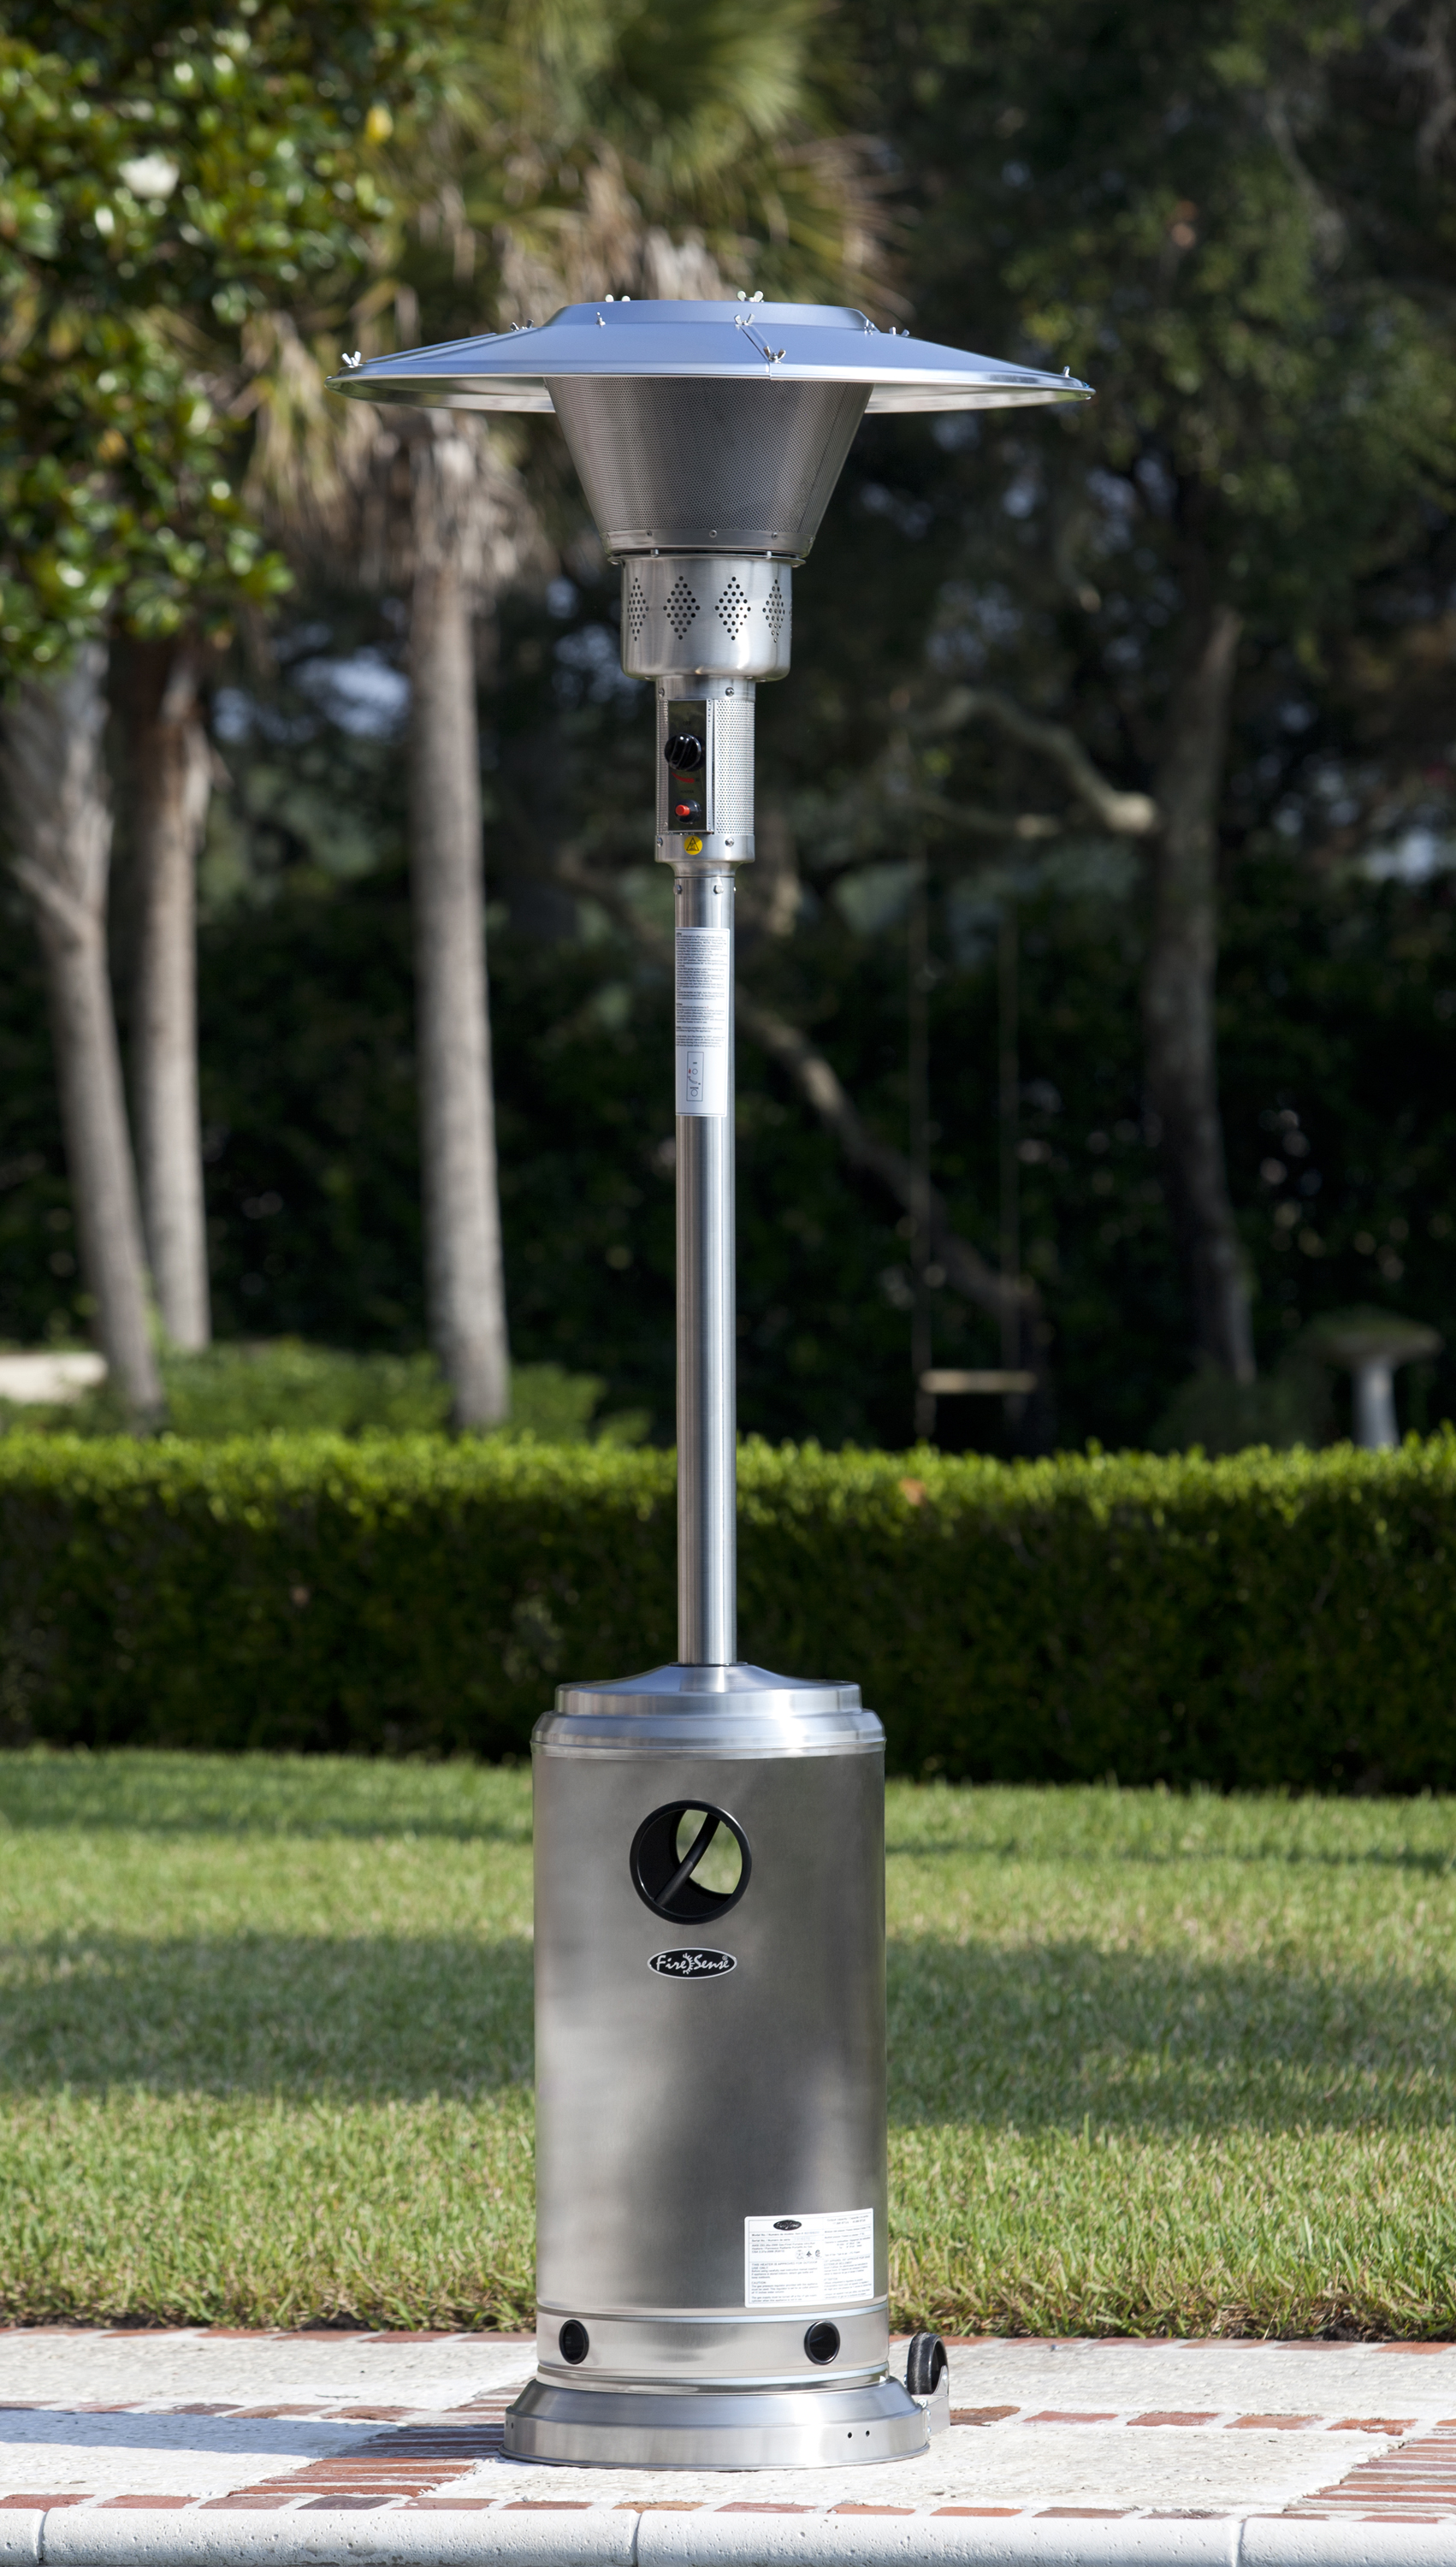 Stainless Steel Prime Round Patio Heater Well Traveled